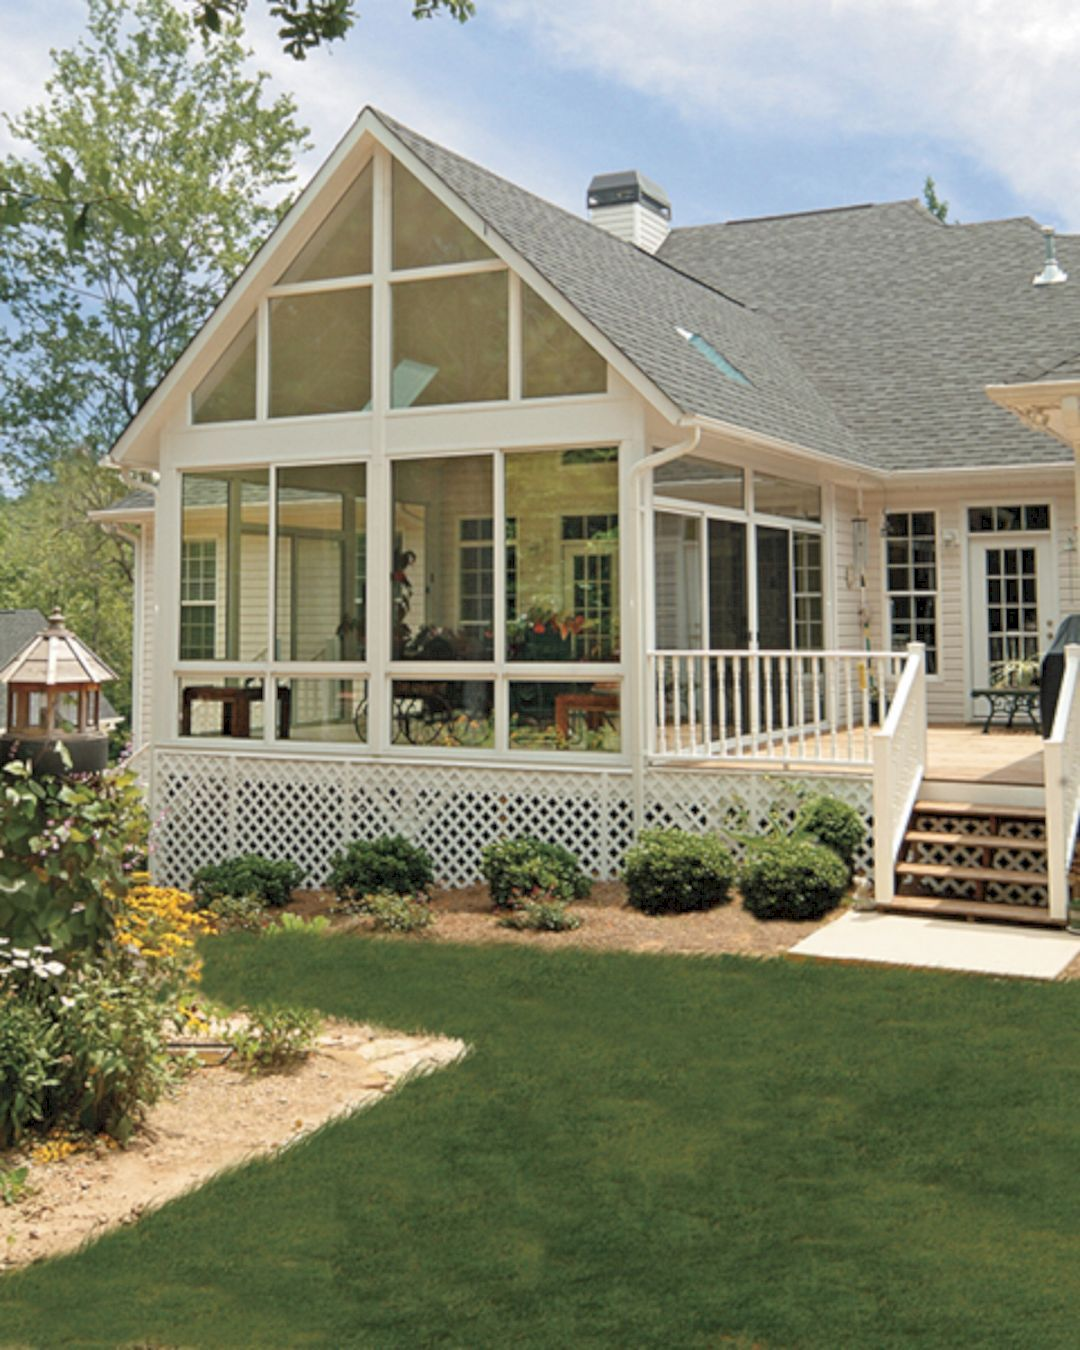 screen porch a nav great plans to interior ideas plan and help build design you screened